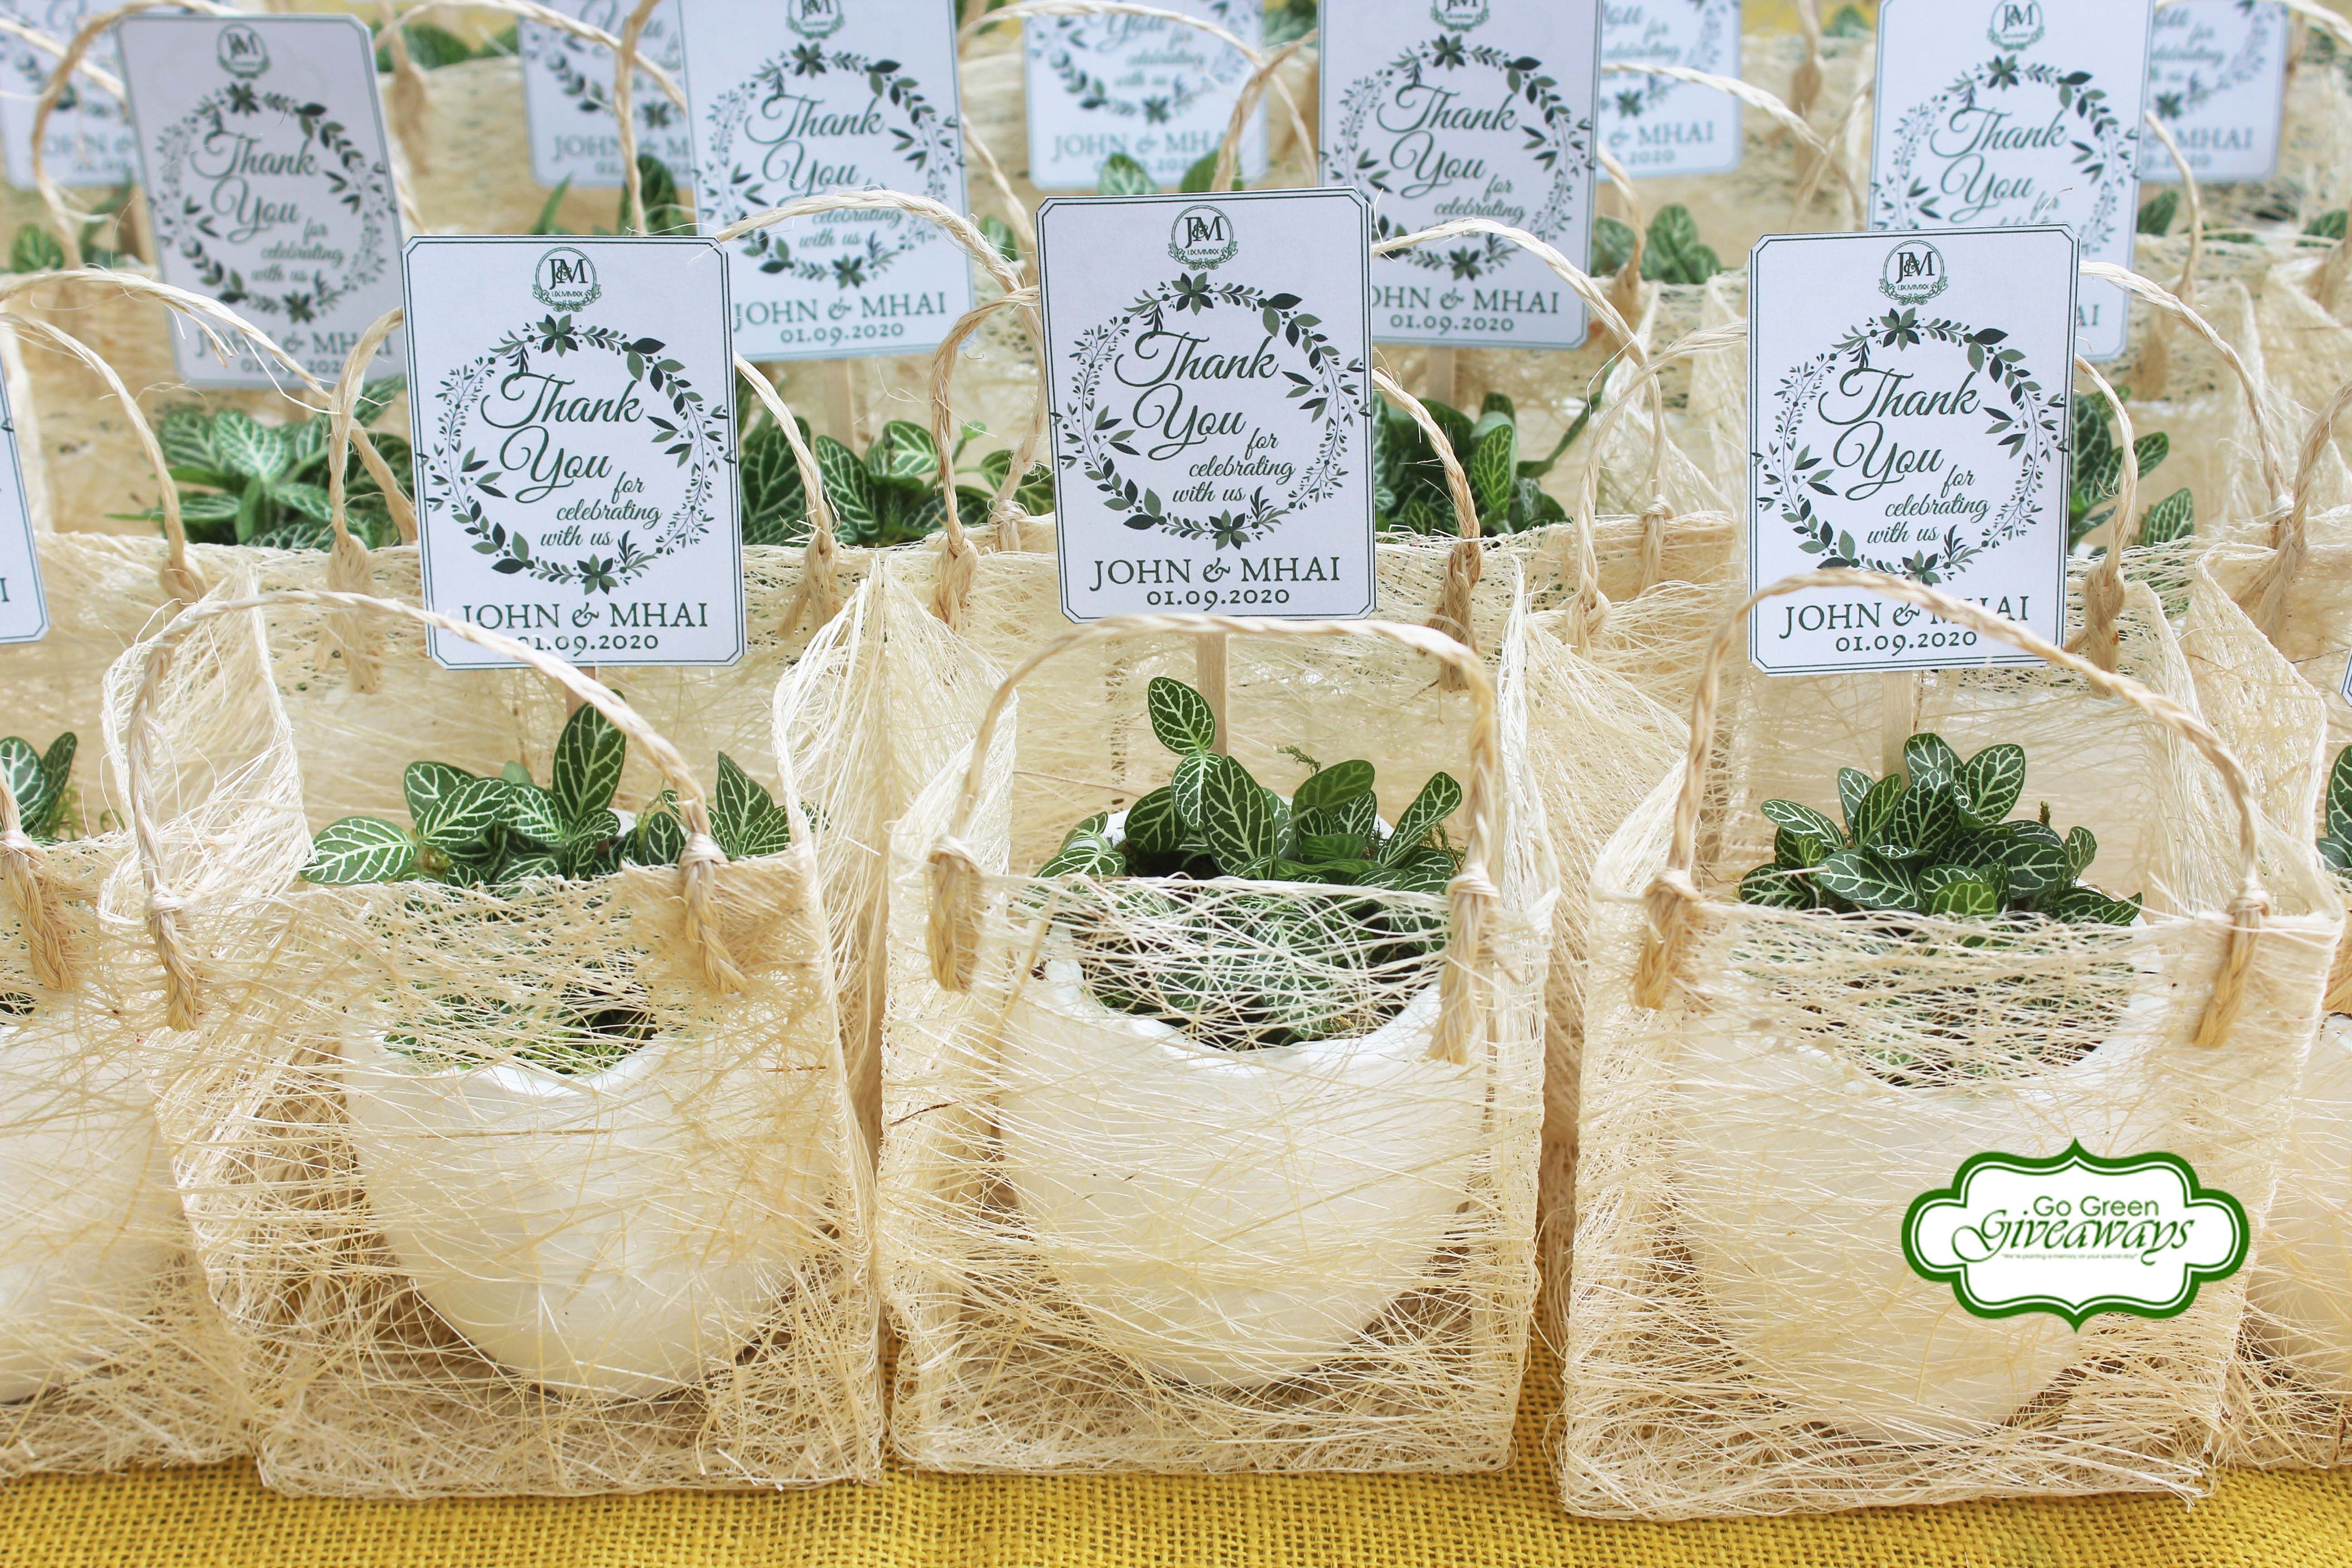 John And Mhai Fittonia Wedding Favors In 2020 Wedding Favors Plant Wedding Favors Wedding